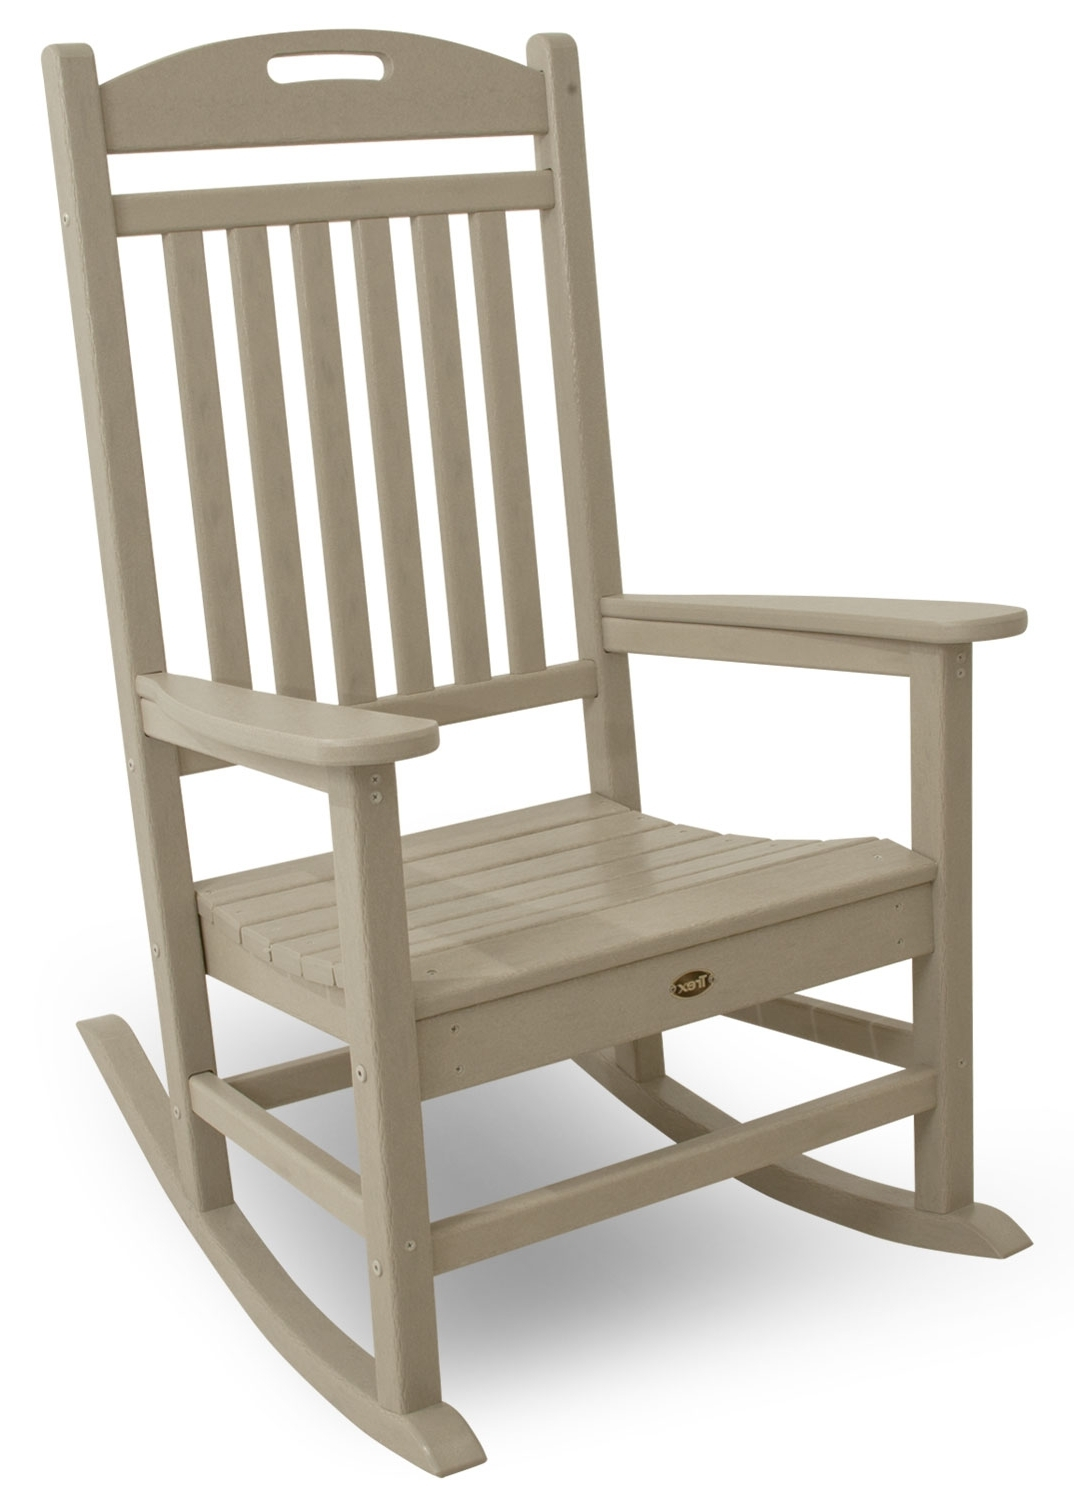 Outdoor Rocking Chairs Intended For Well Known Yacht Club Rocking Chair (View 8 of 15)